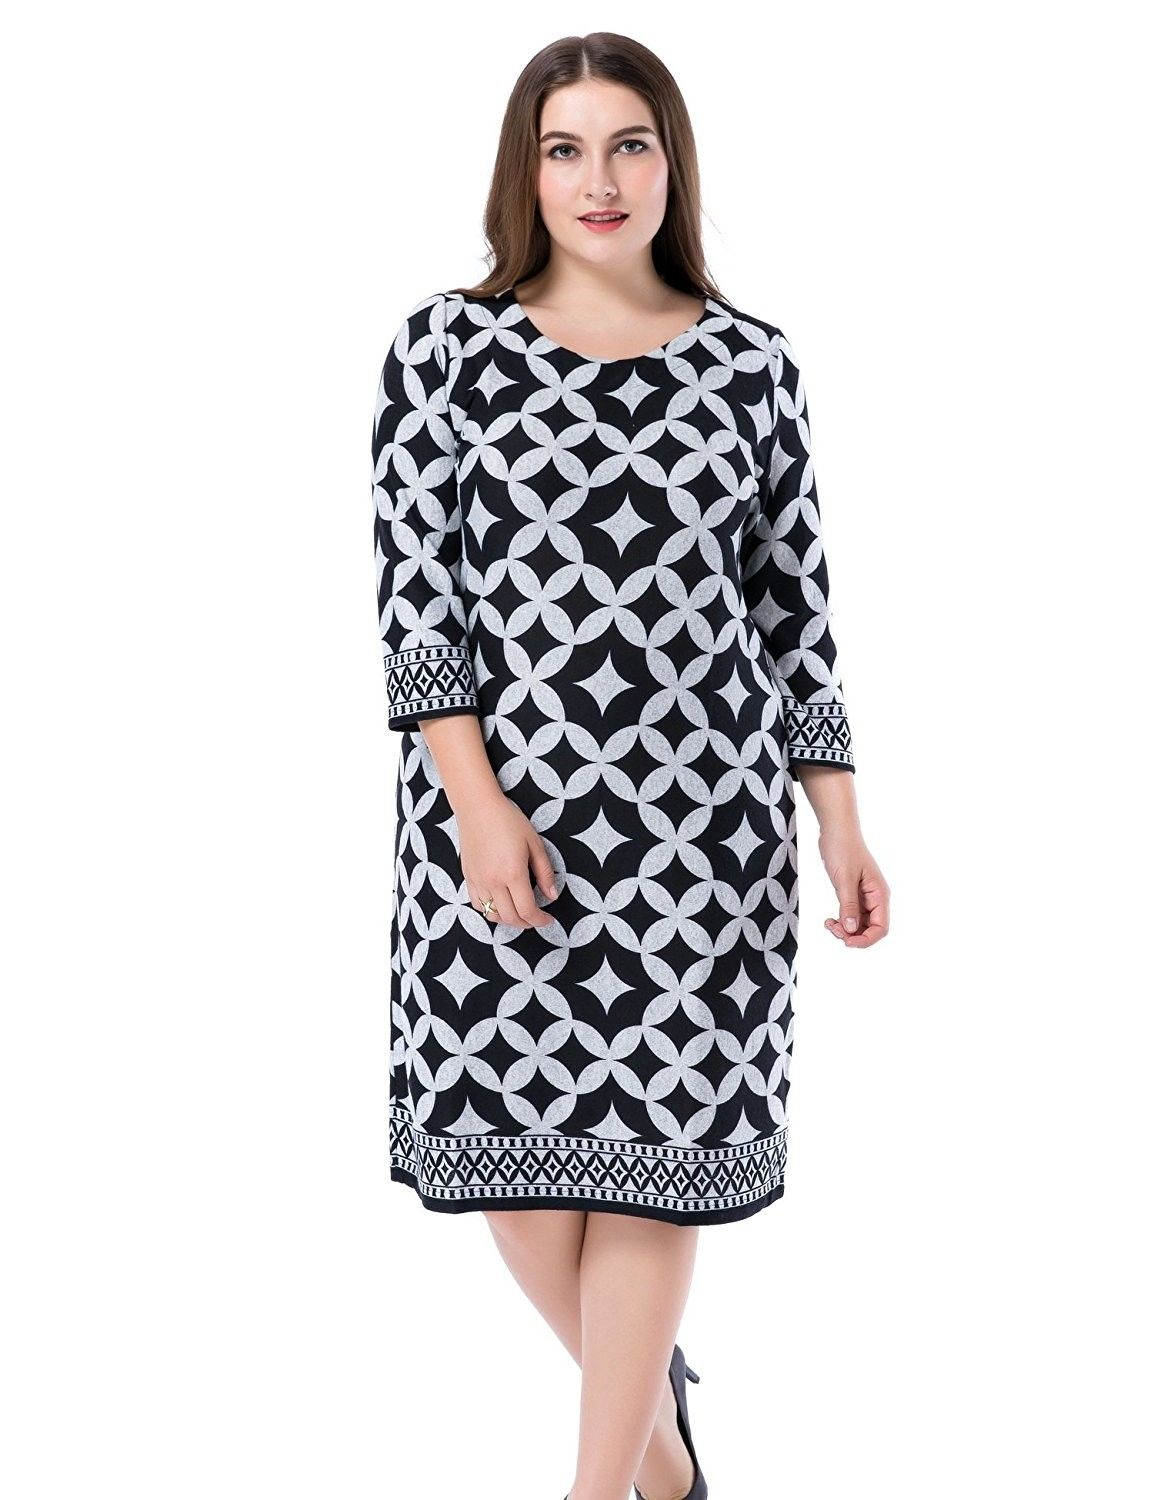 8e7df0aef3c Women s Plus Size Printed Shift Dress Cashmere Touch US12-28 - Grey ...